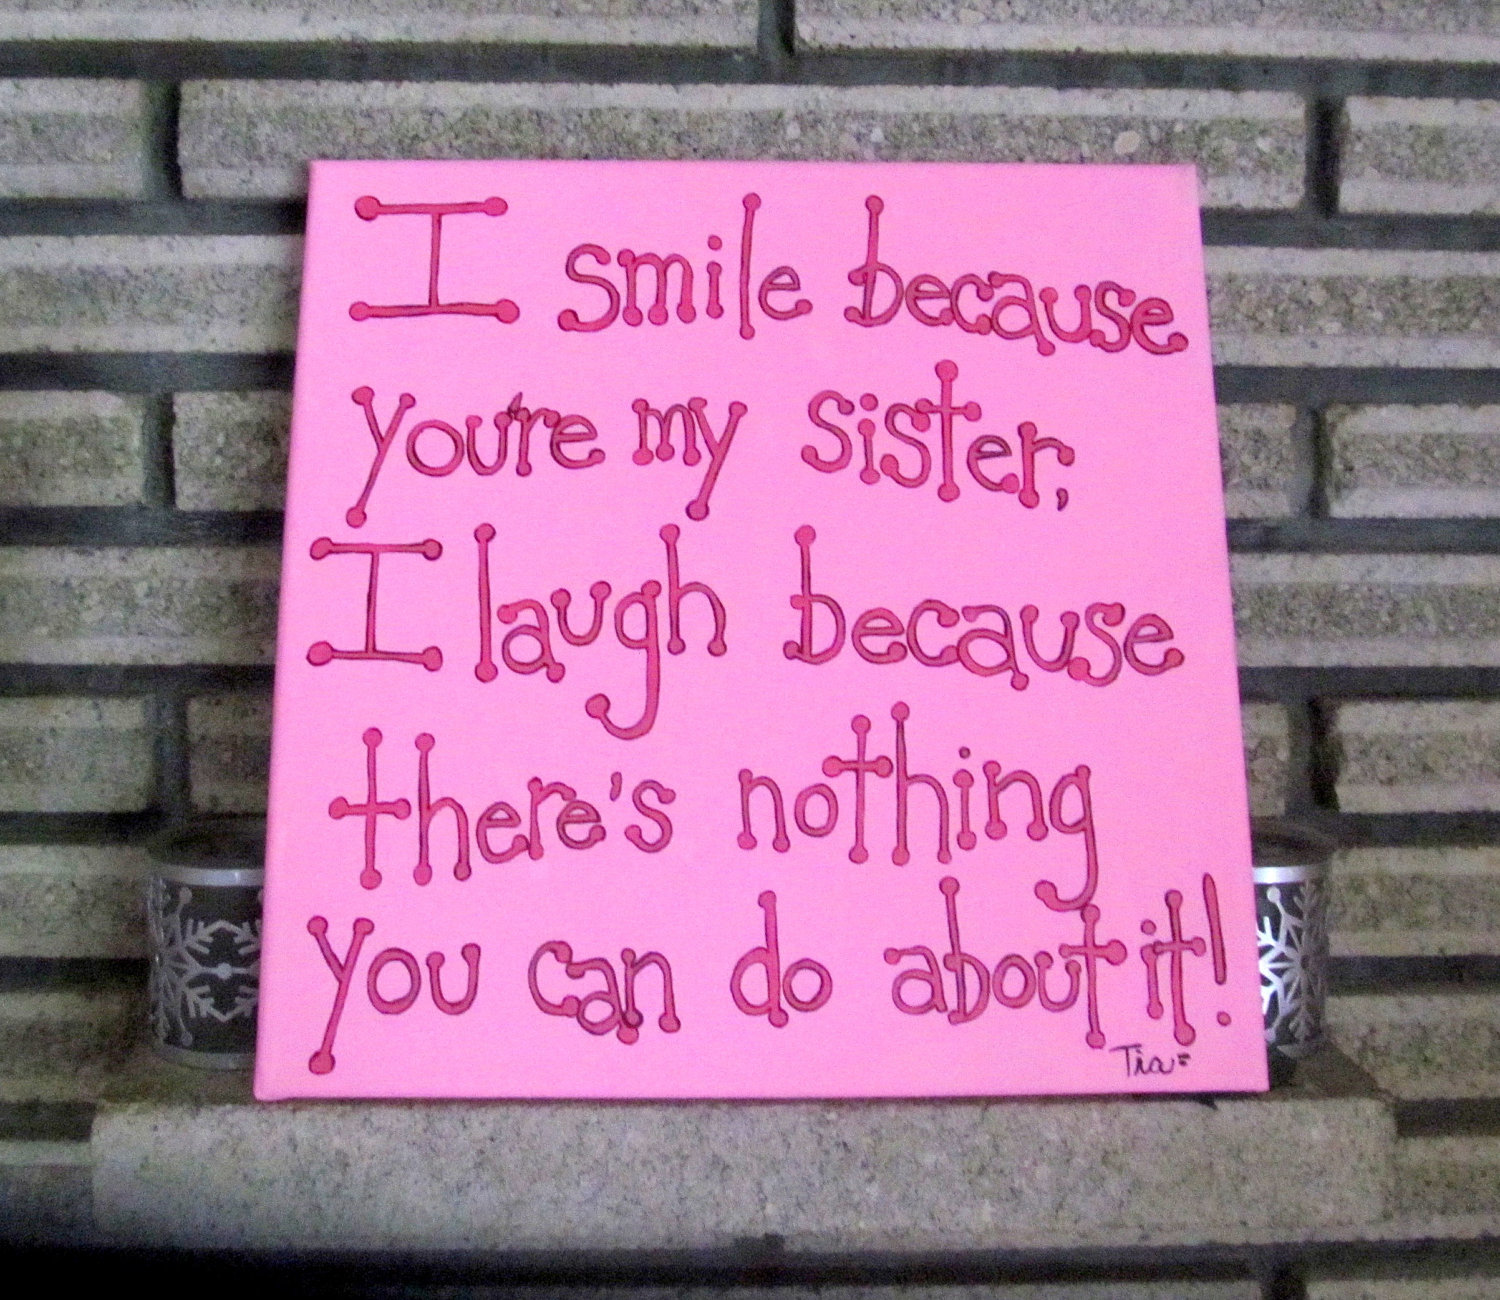 Funny Sweet Quotes For Her Quotesgram: Funny Sister Quotes And Cute. QuotesGram